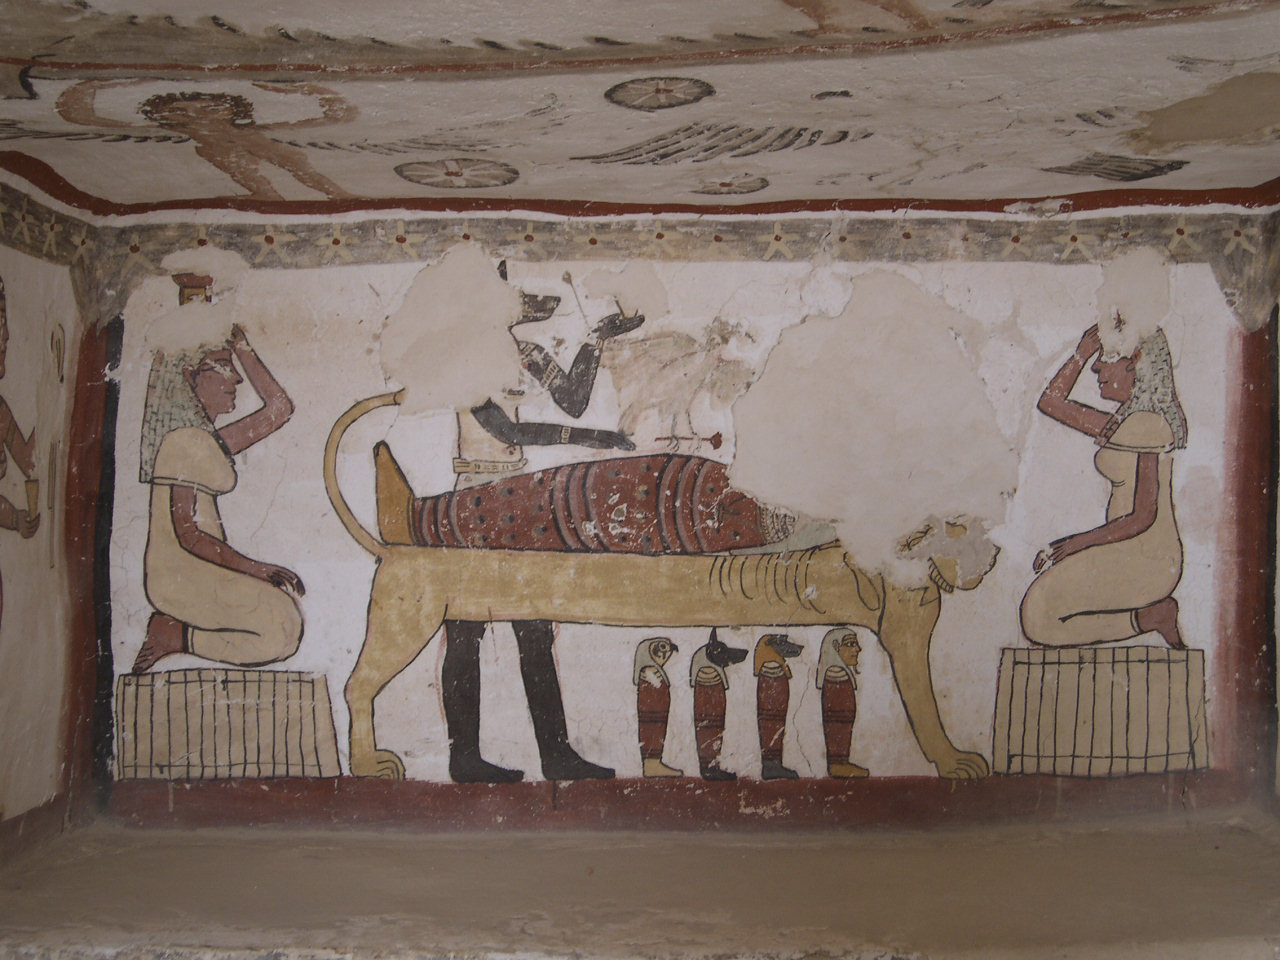 egypt-history-egyptology-850906-o